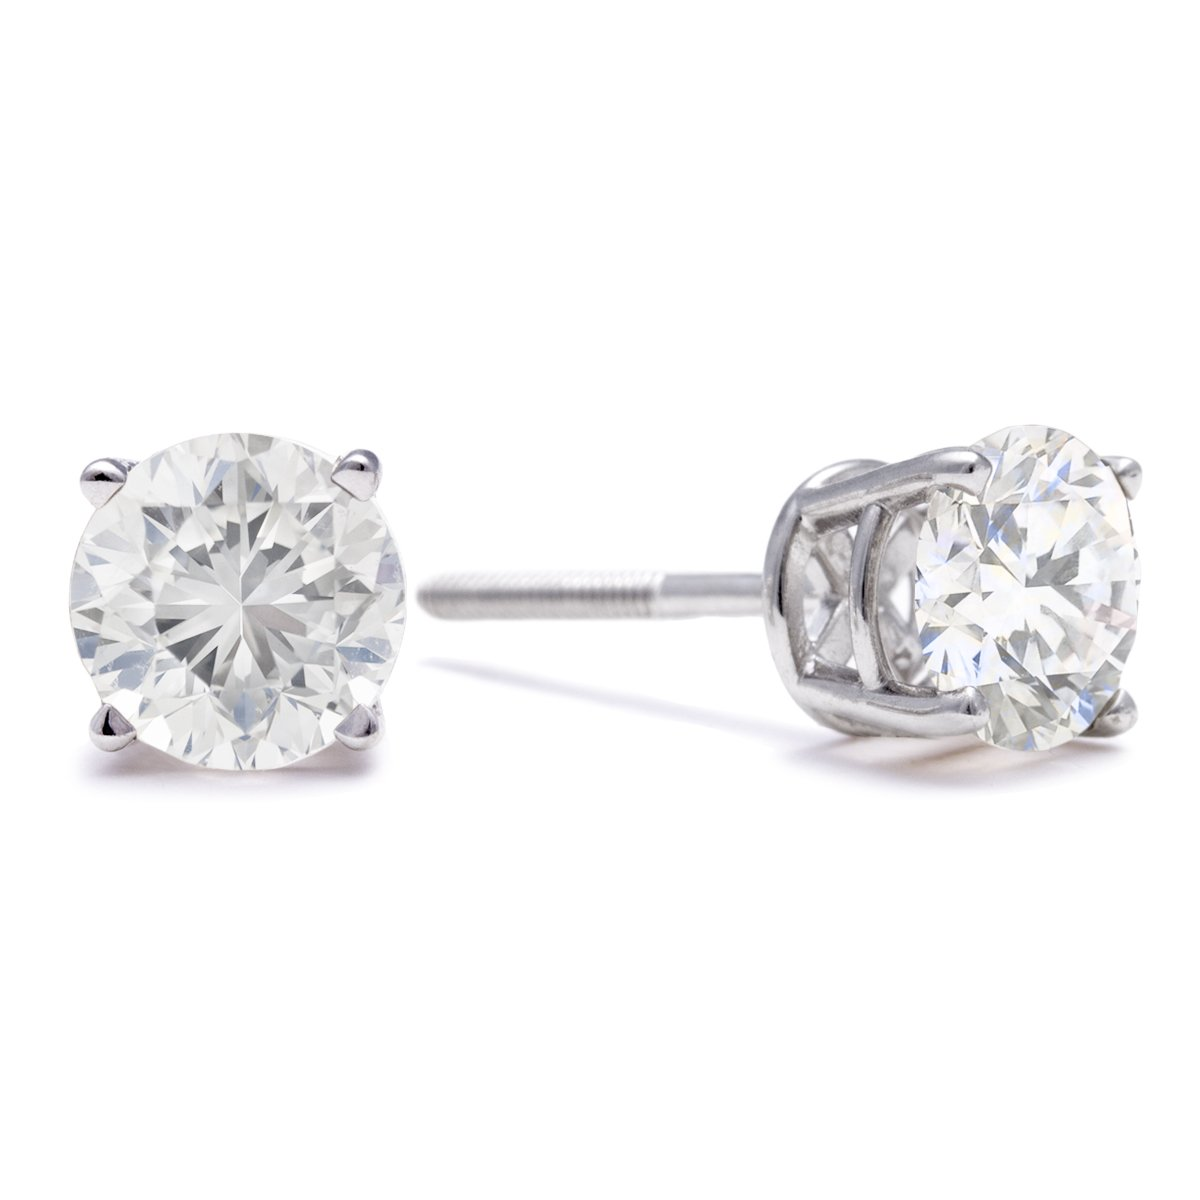 1 ½ cttw 14k White Gold Round Diamond Stud Earrings (AGS Certified K-L, I2-I3)